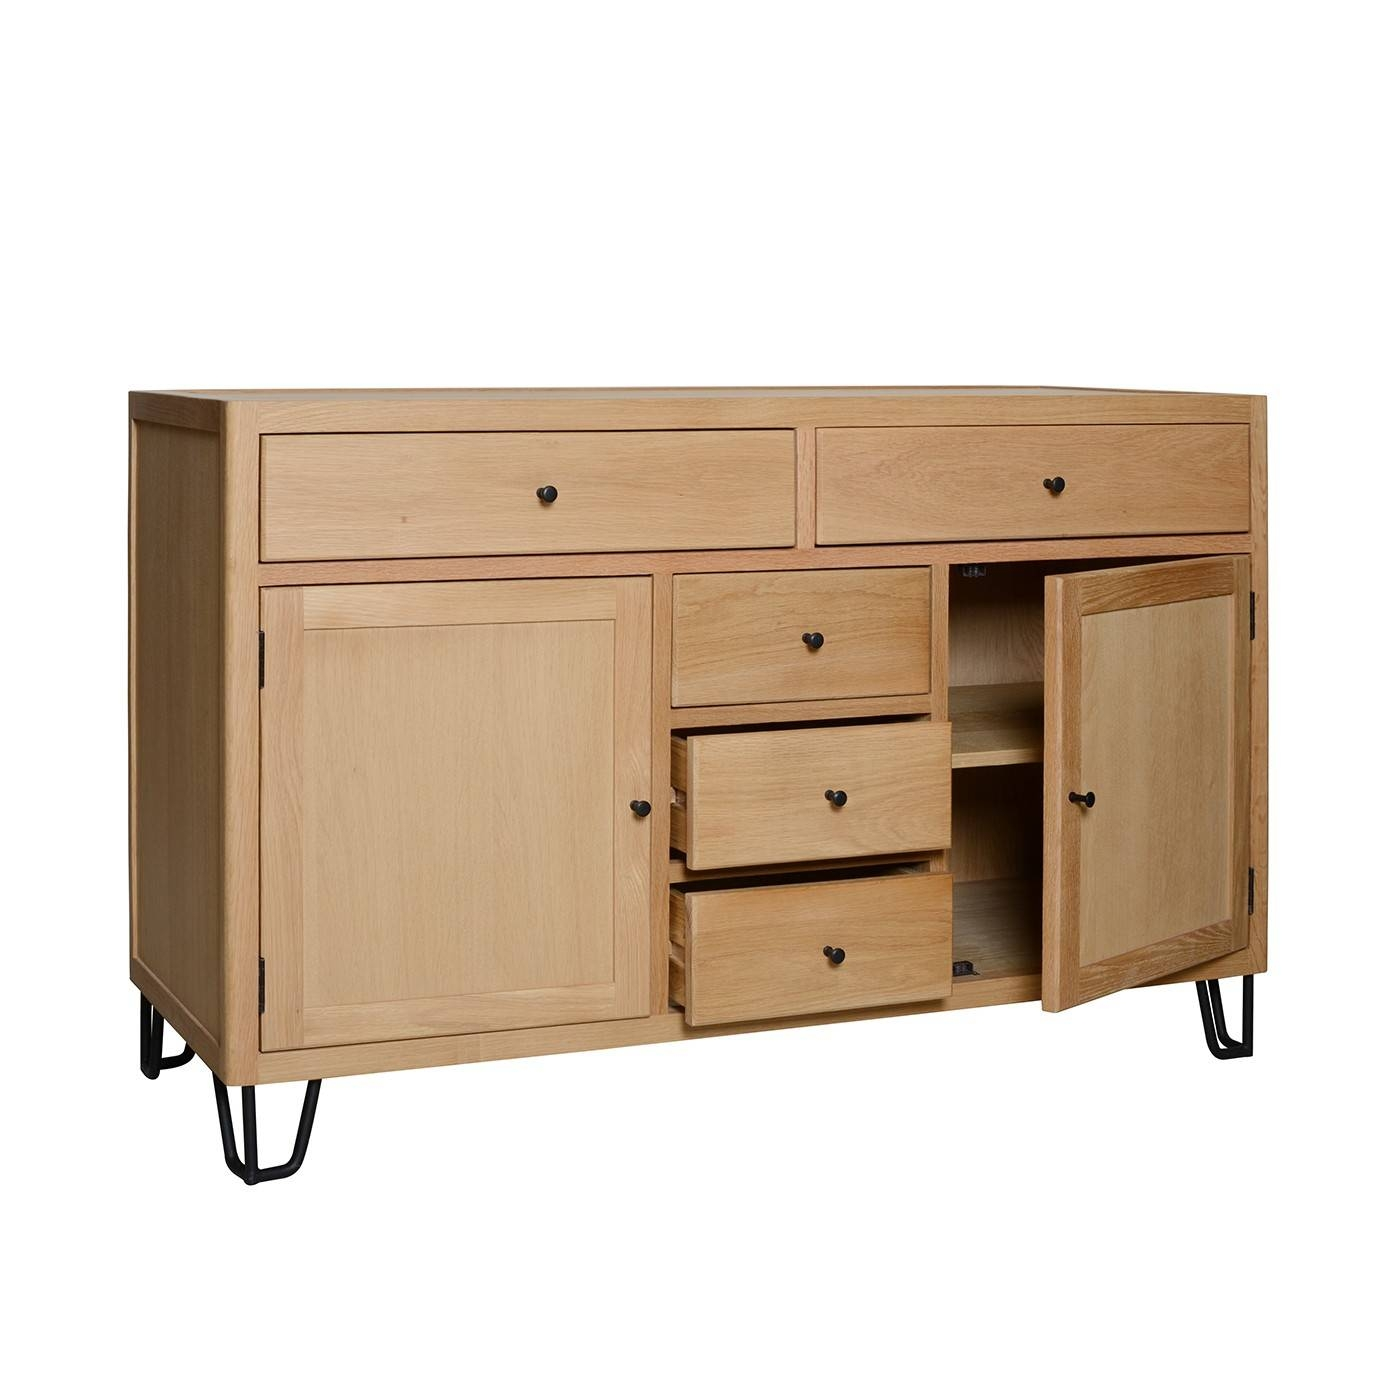 Light Wood Sideboards | Designer Contemporary Sideboards | Heal's intended for Light Wood Sideboards (Image 10 of 30)